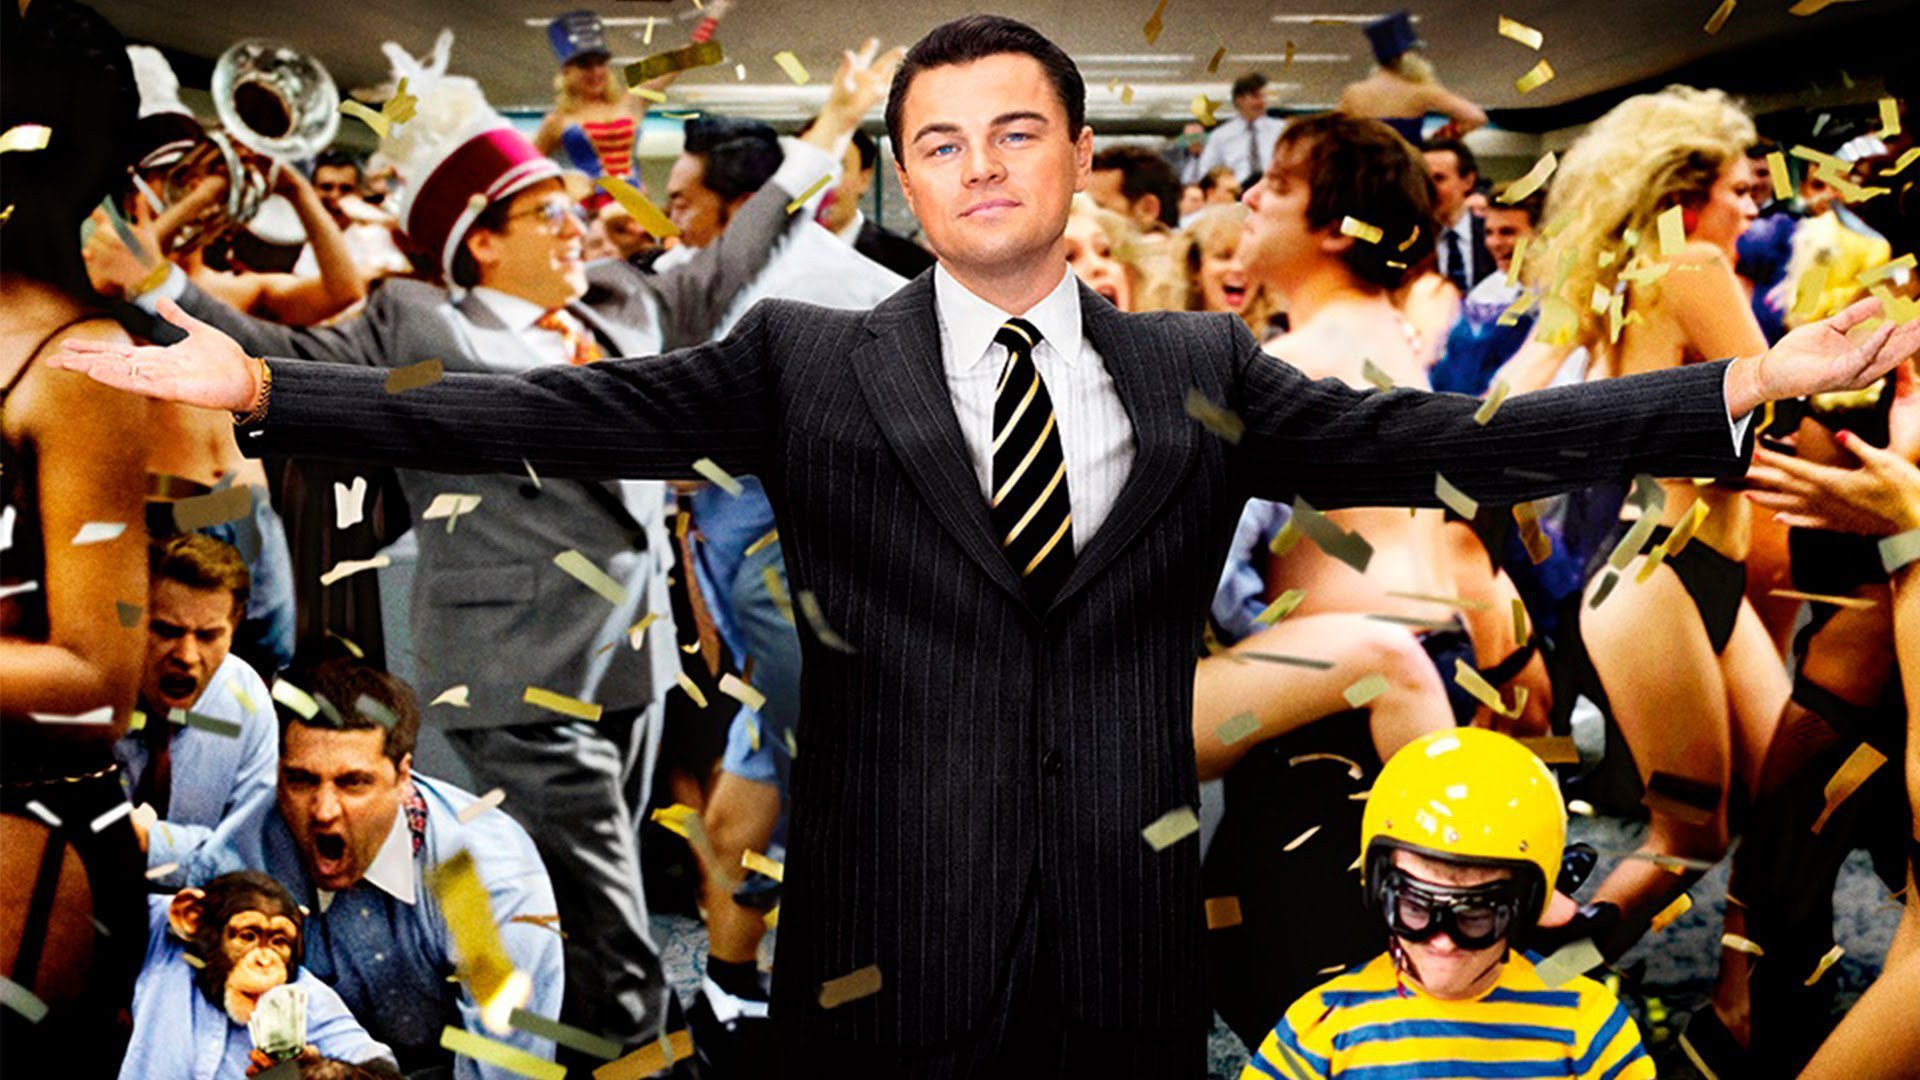 movies the new movie the wolf with the wall street 065626